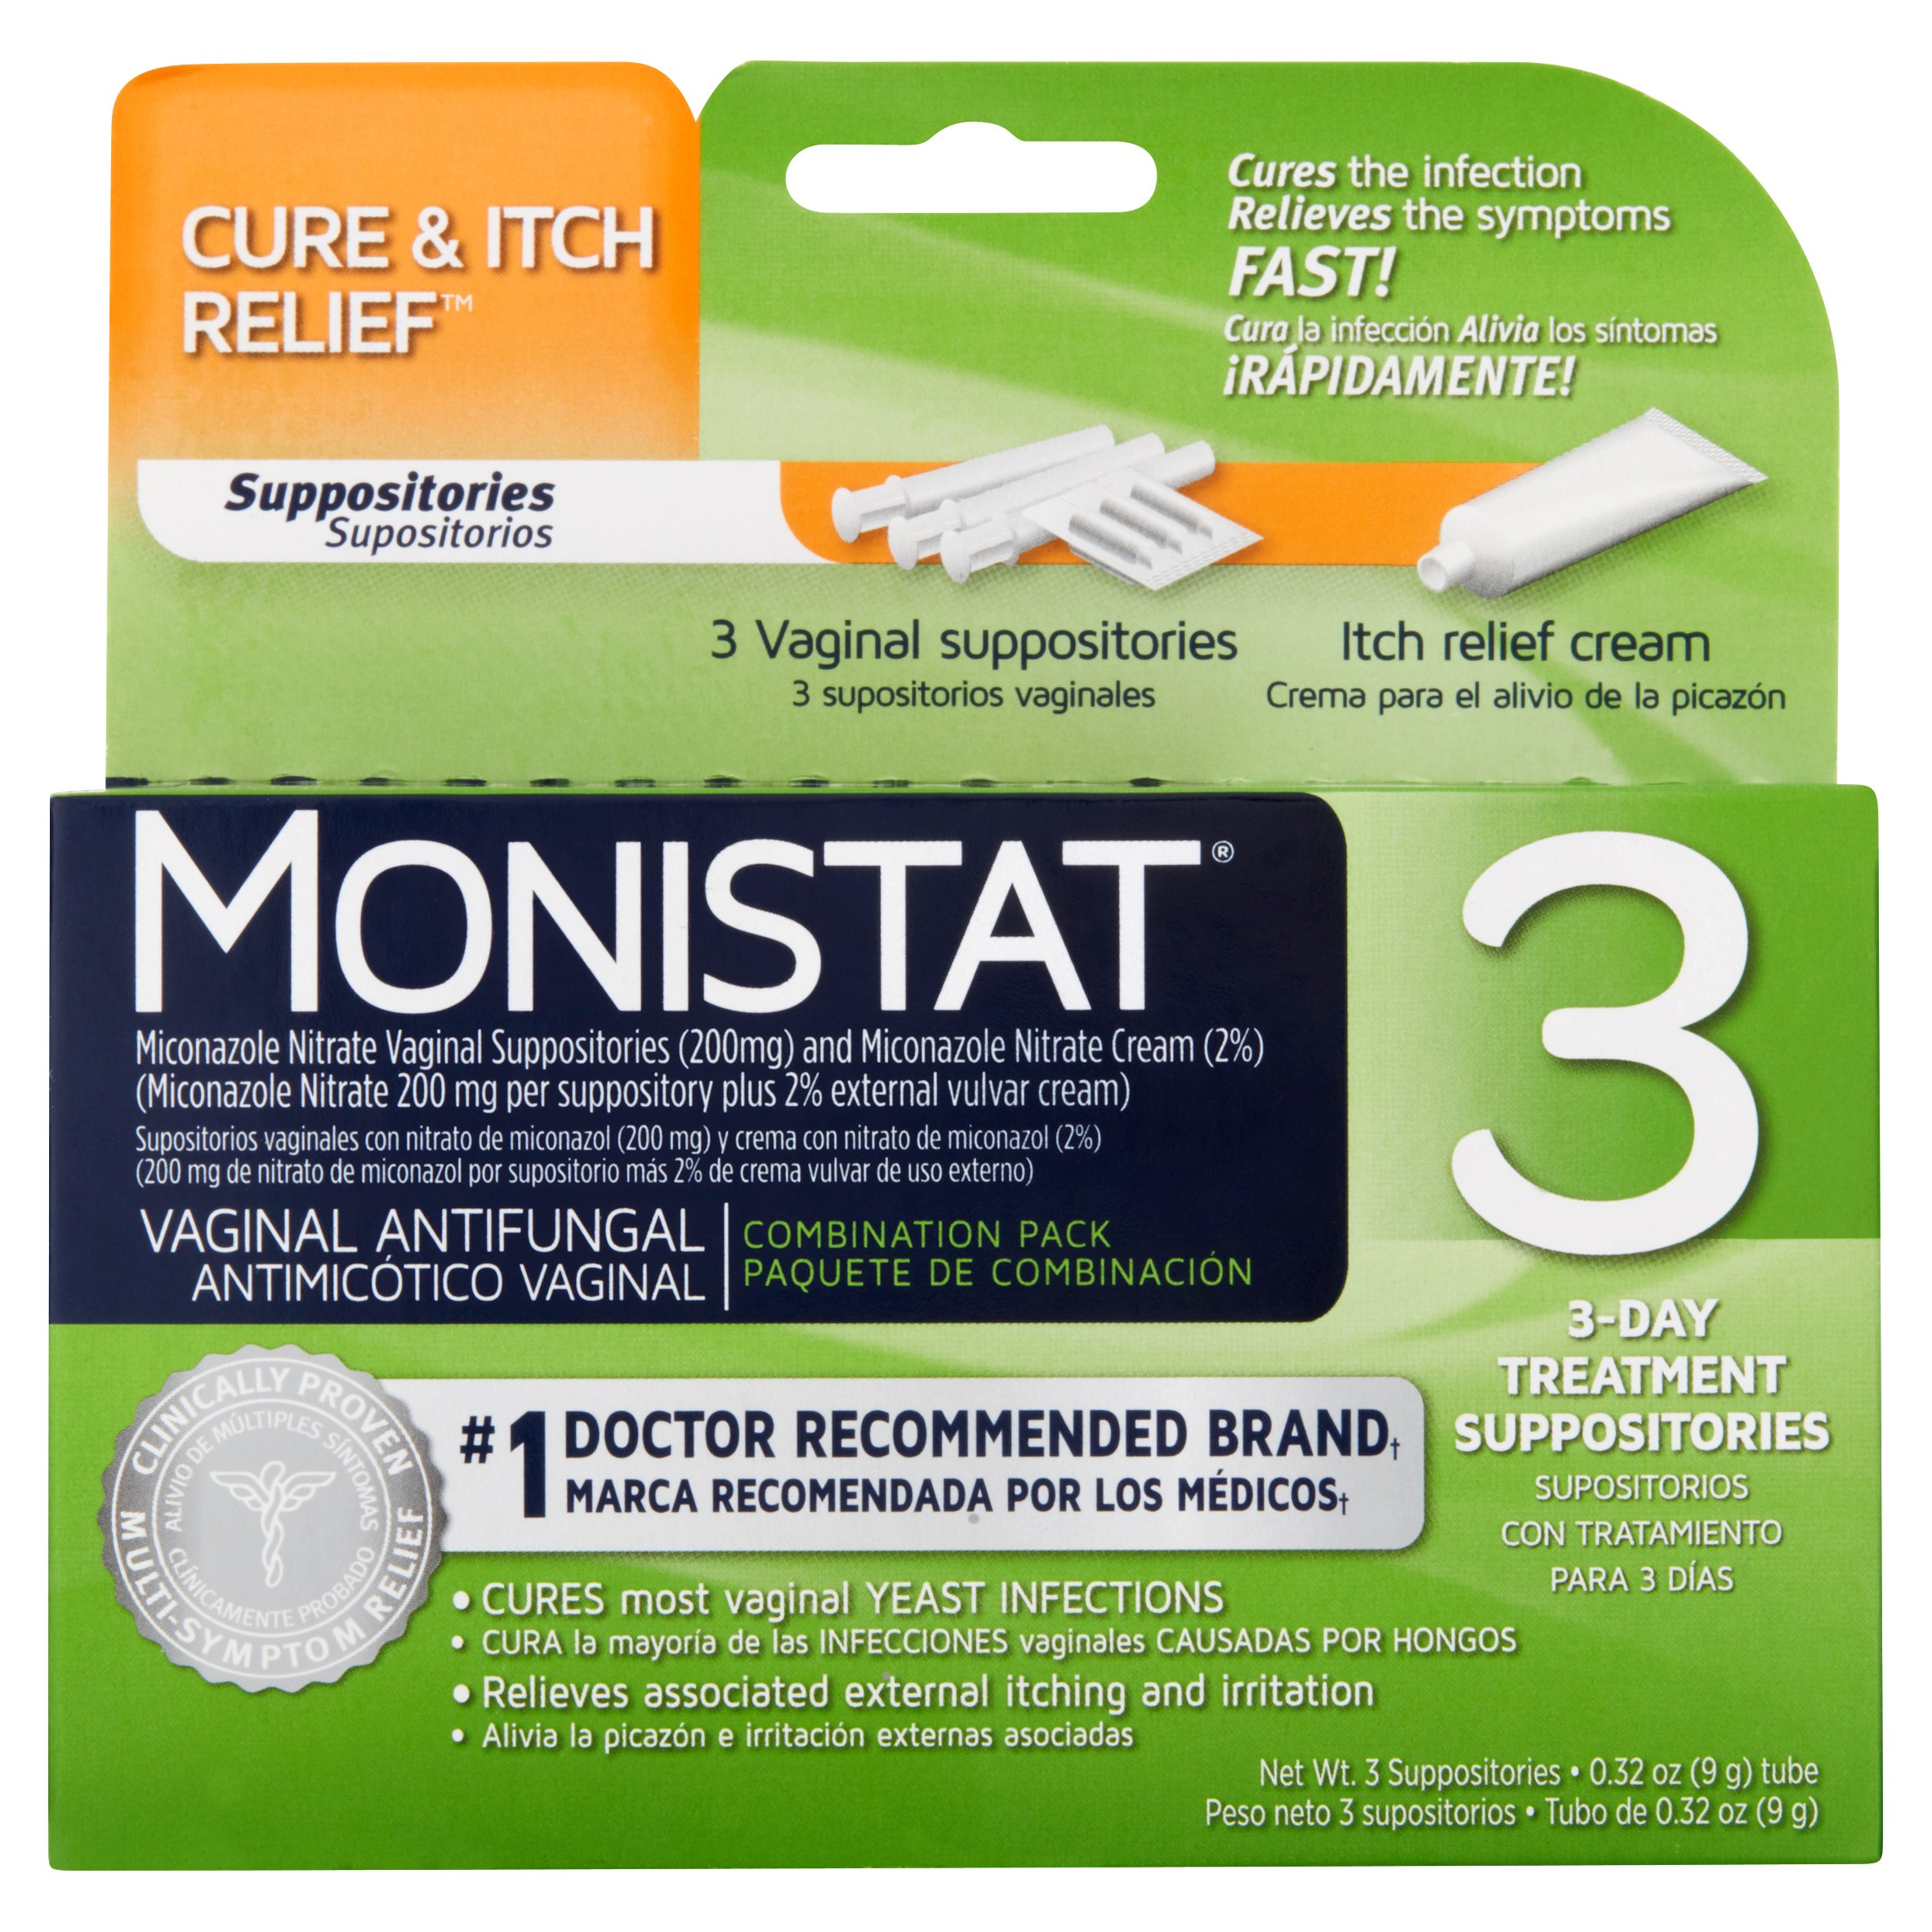 Monistat Viganal Suppositories Combination Pack